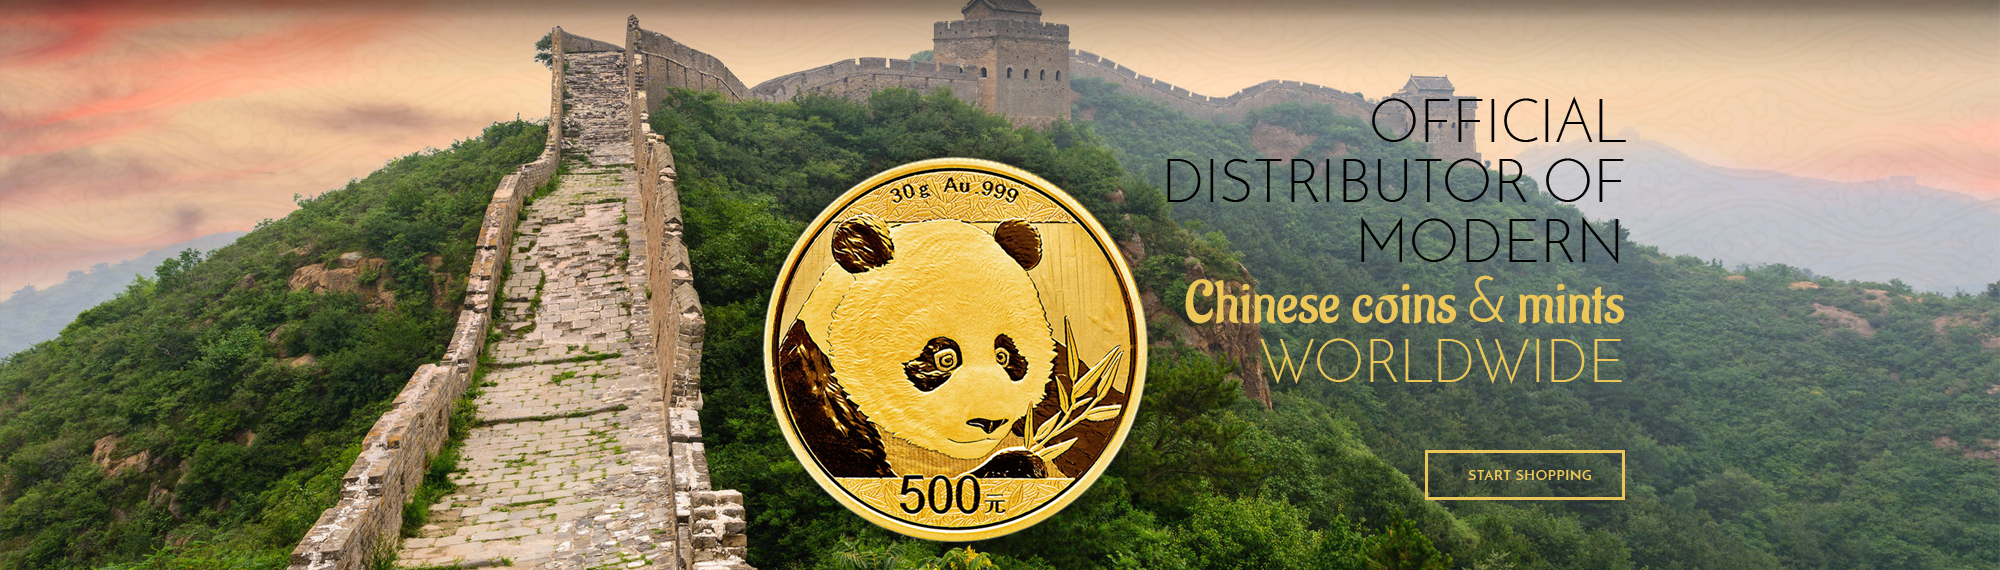 Official distributor of modern - Chinese coins & mints - worldwide - start shopping